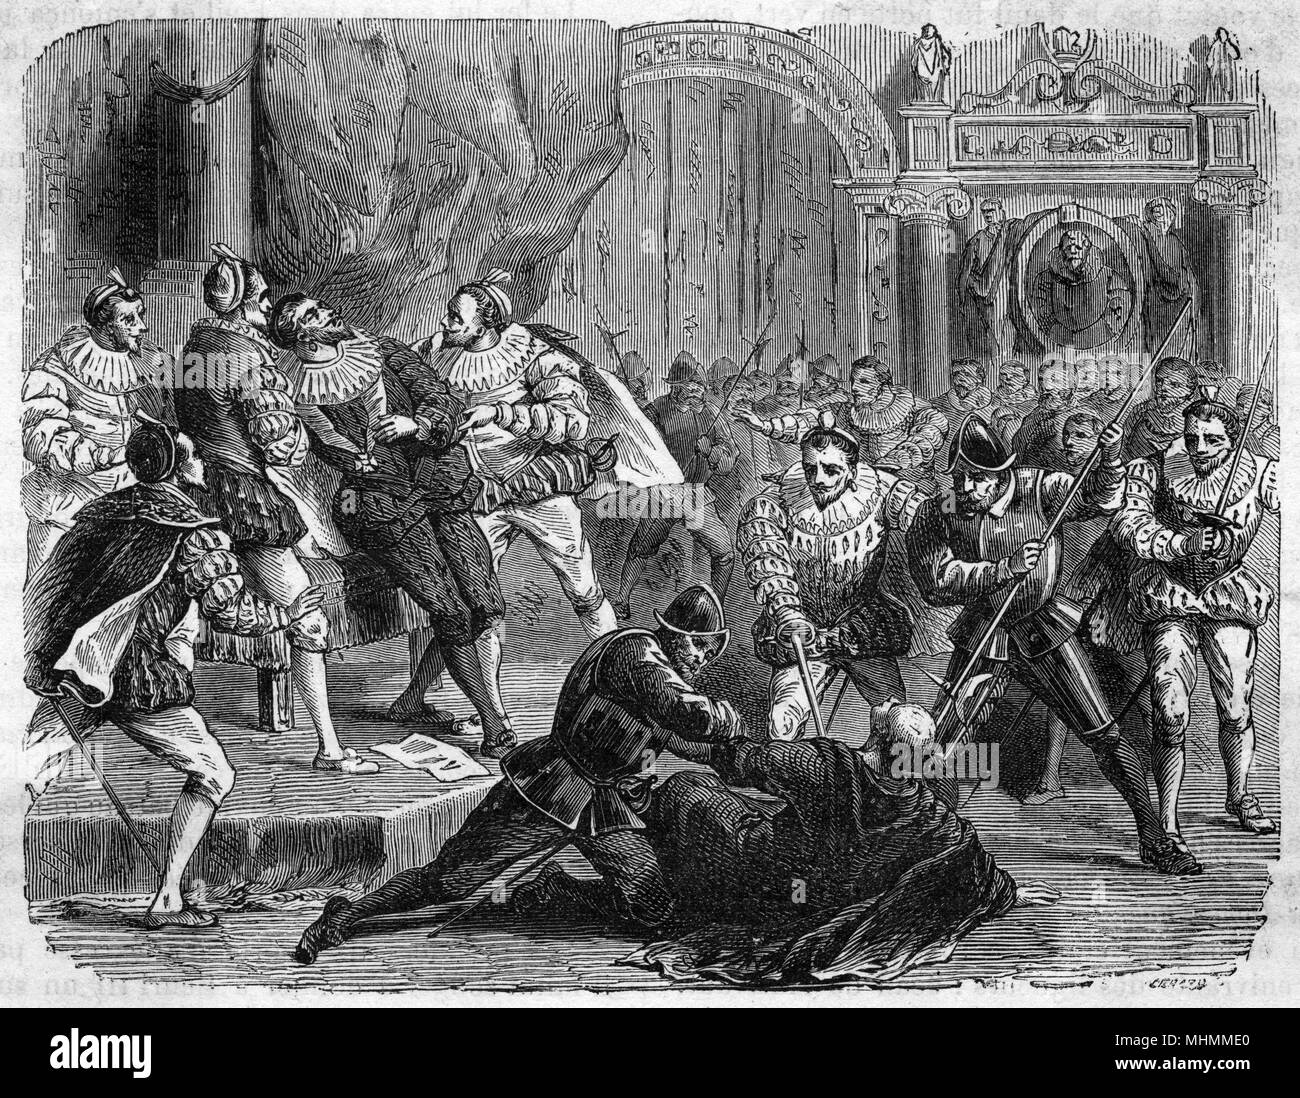 Henri III, at odds not only with the Protestants but also with the Catholic League, is assassinated by a fanatical monk, Jacques Clement, at the instigation of the League.     Date: 1 August 1589 - Stock Image